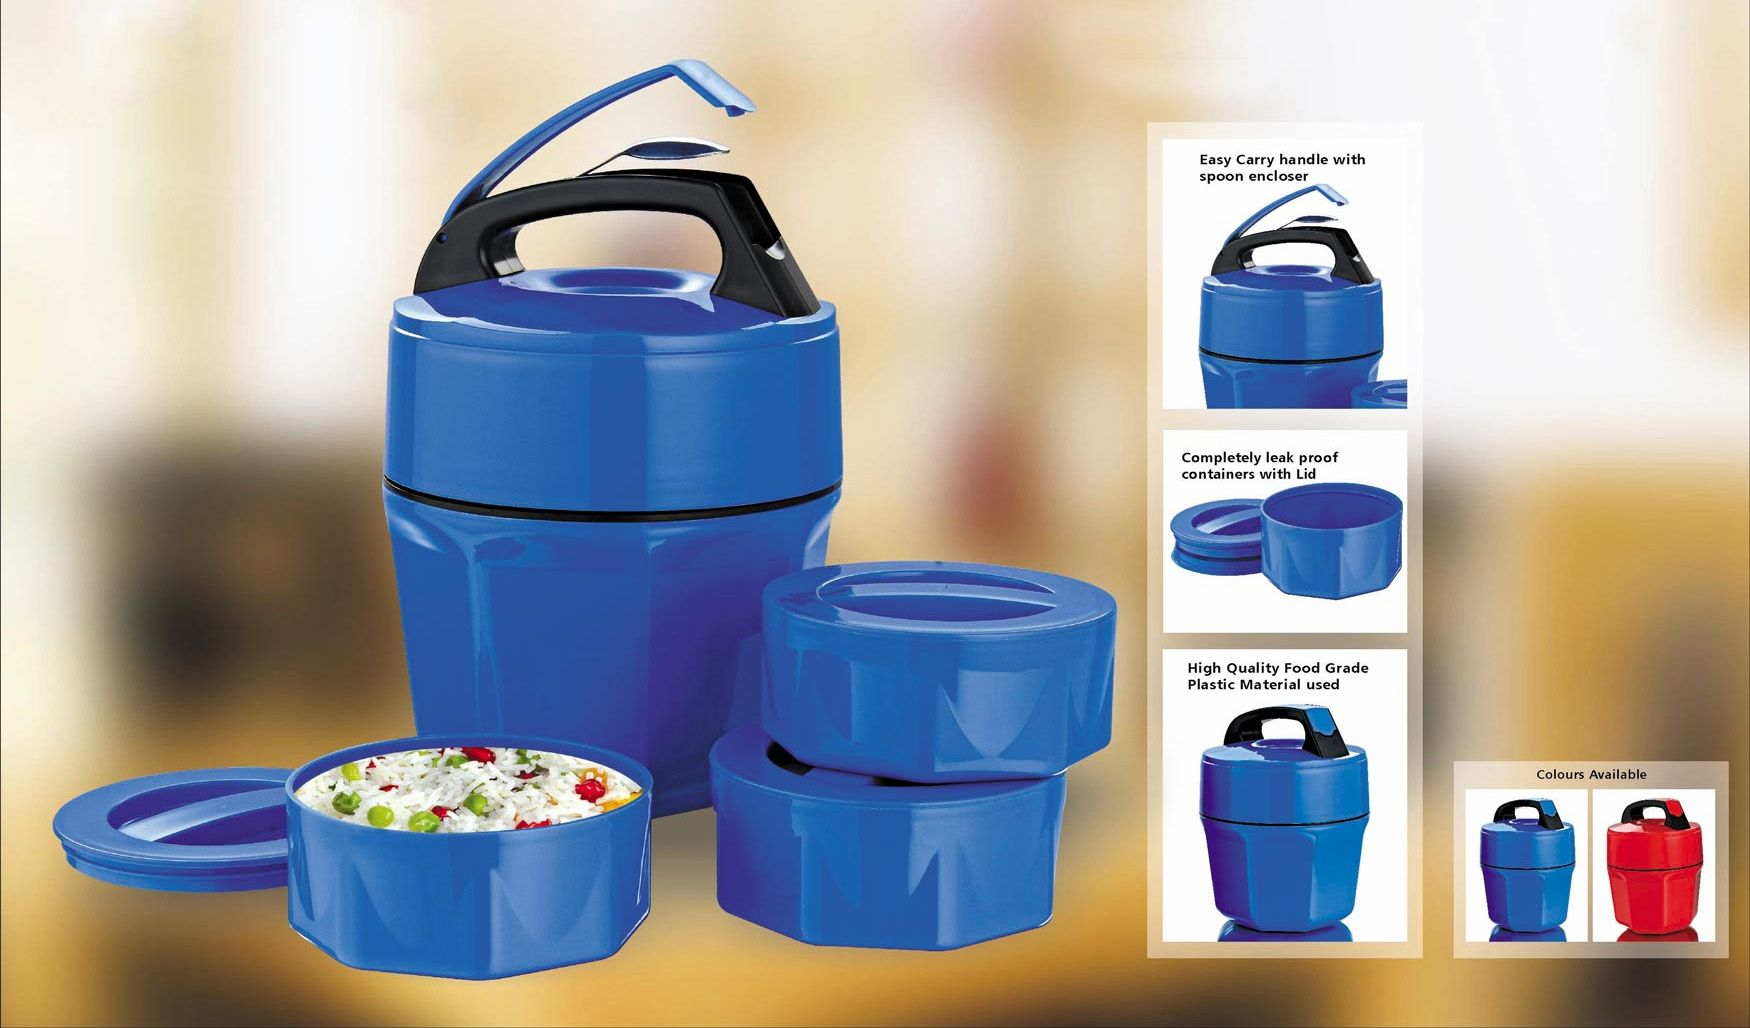 Power Plus Octomeal Lunch Box - 3 Containers (Plastic) H86